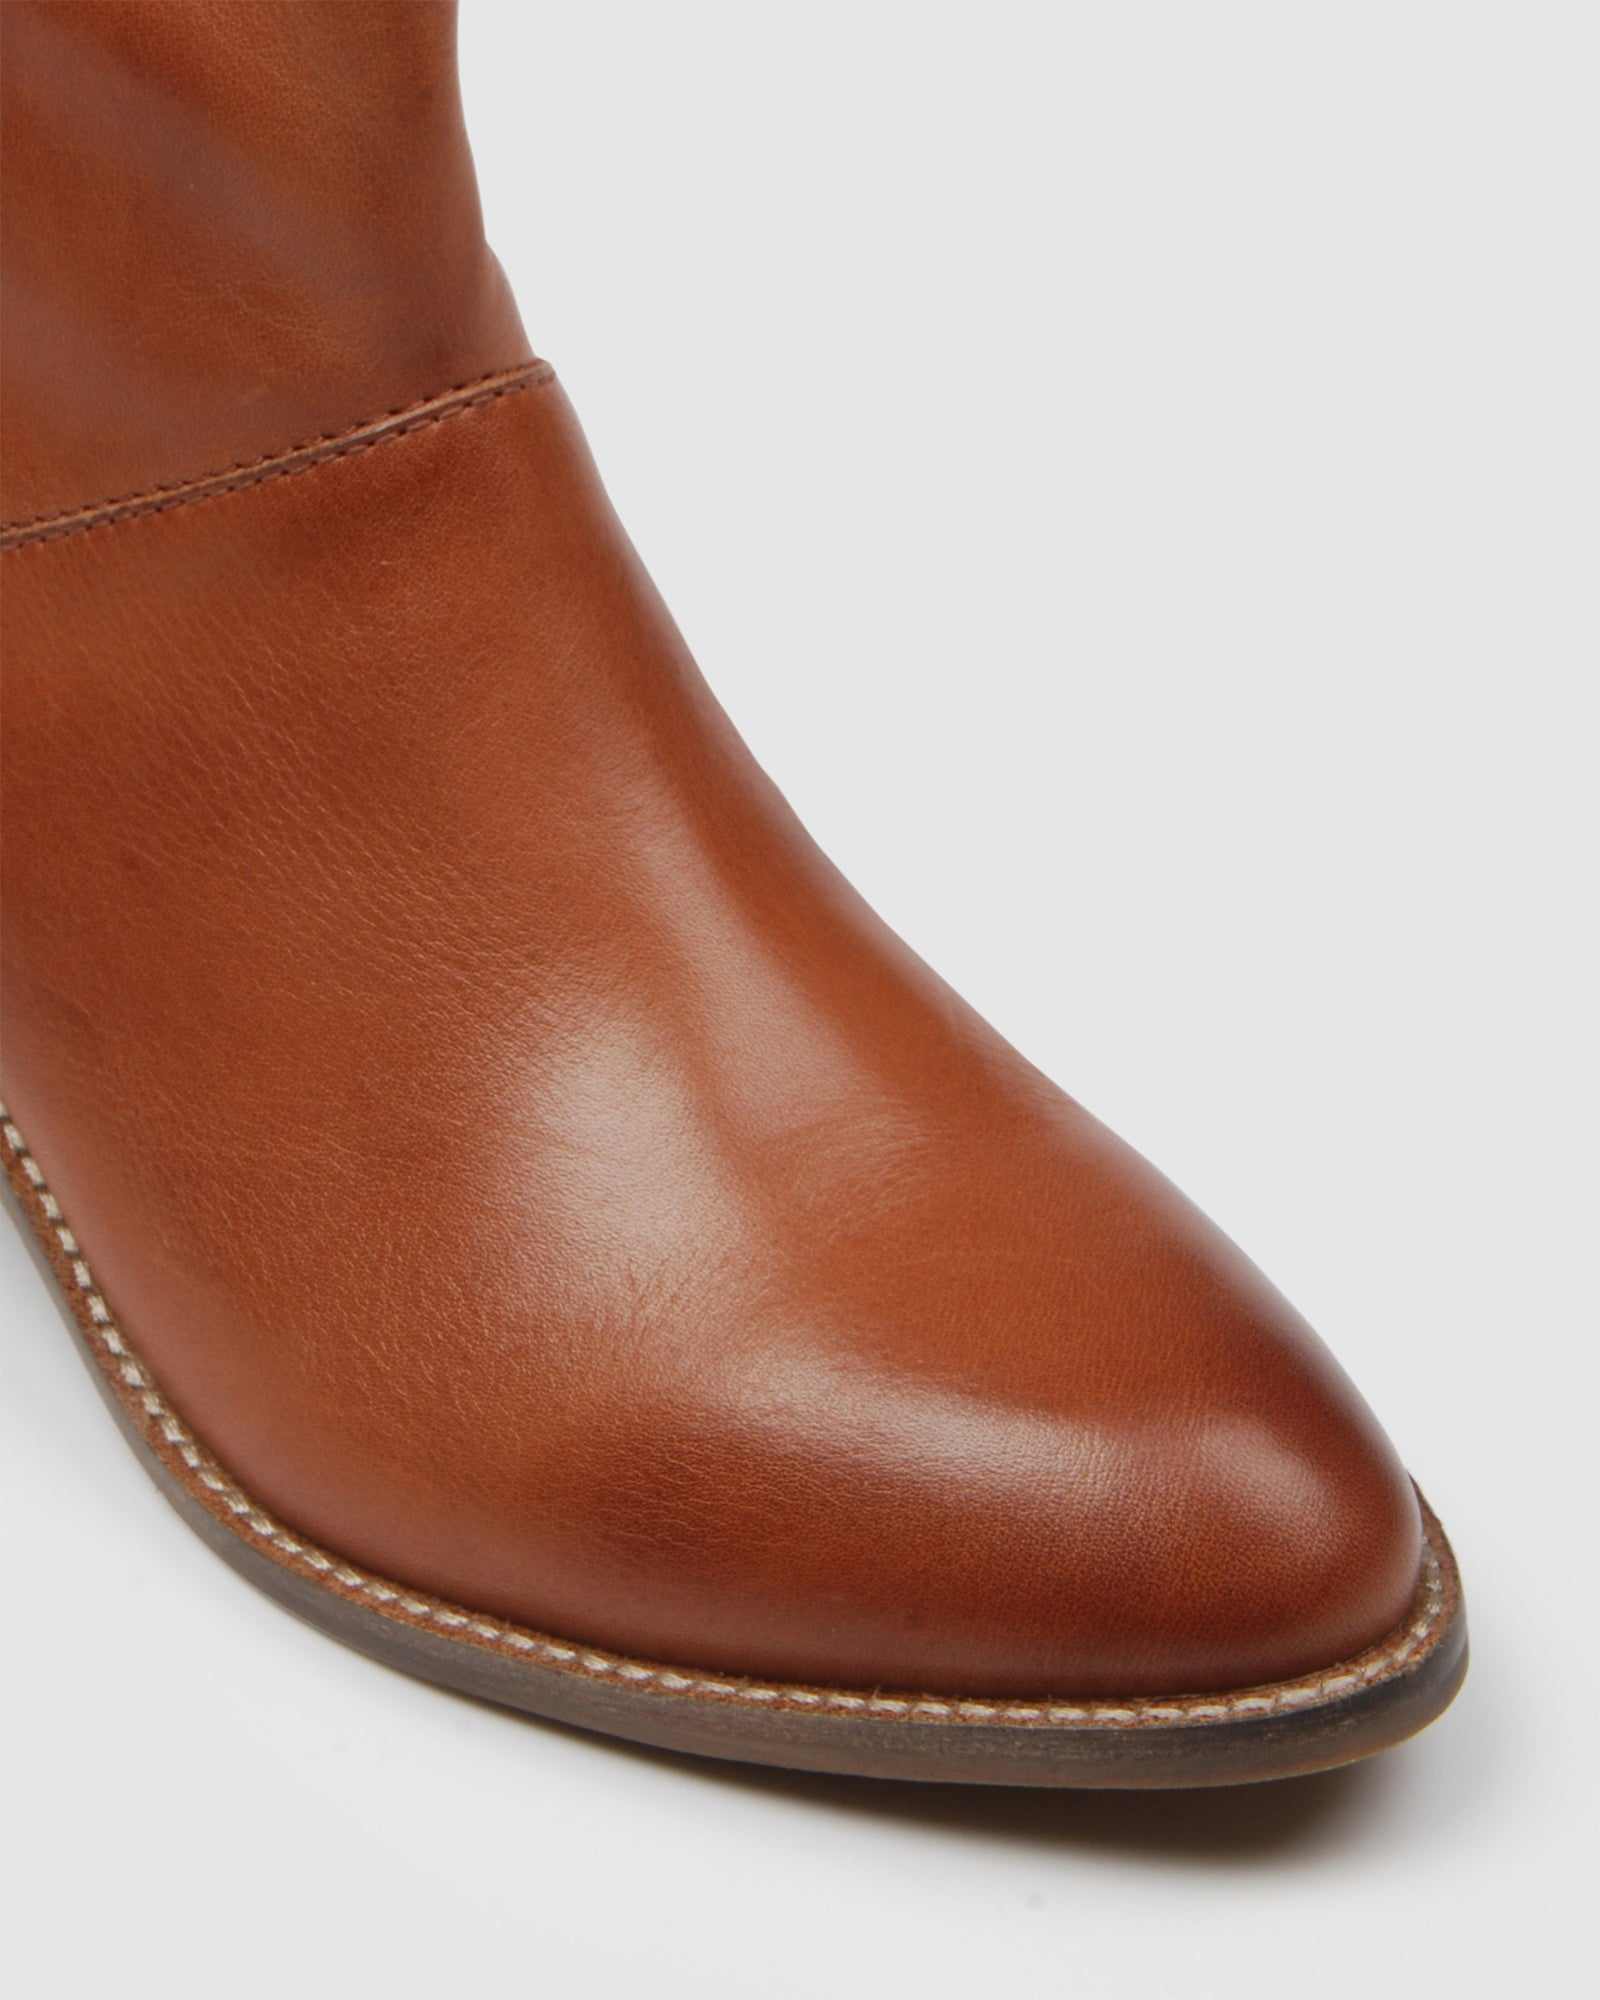 AMAX MID CALF BOOTS COGNAC LEATHER